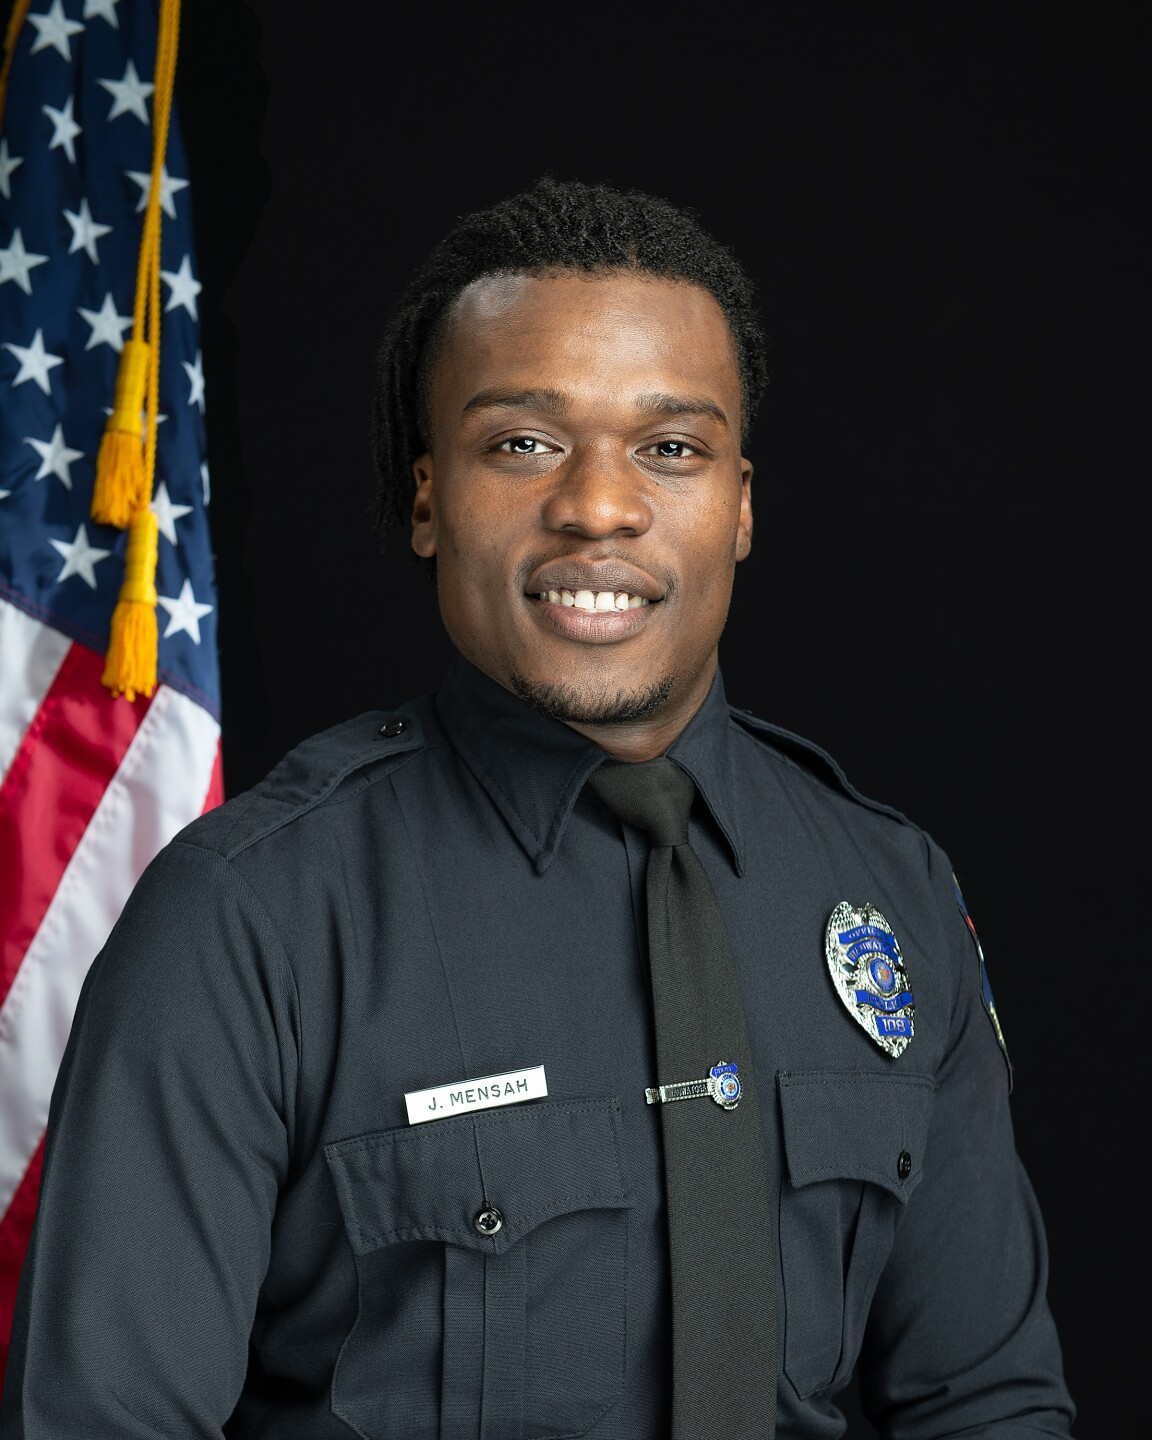 officer-joseph-mensah